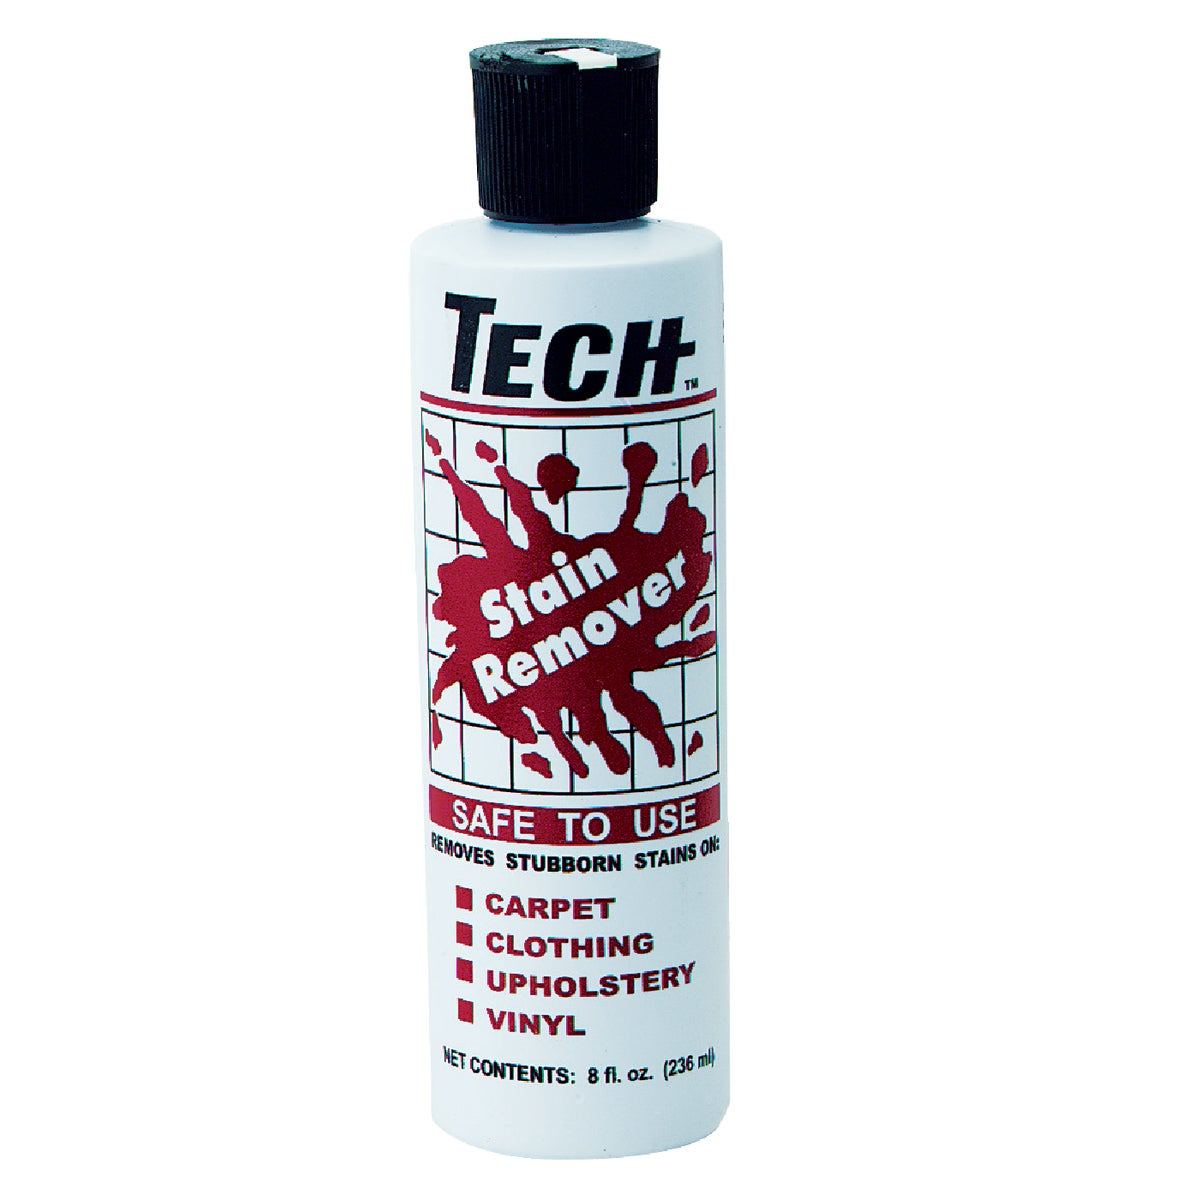 Tech Stain Remover